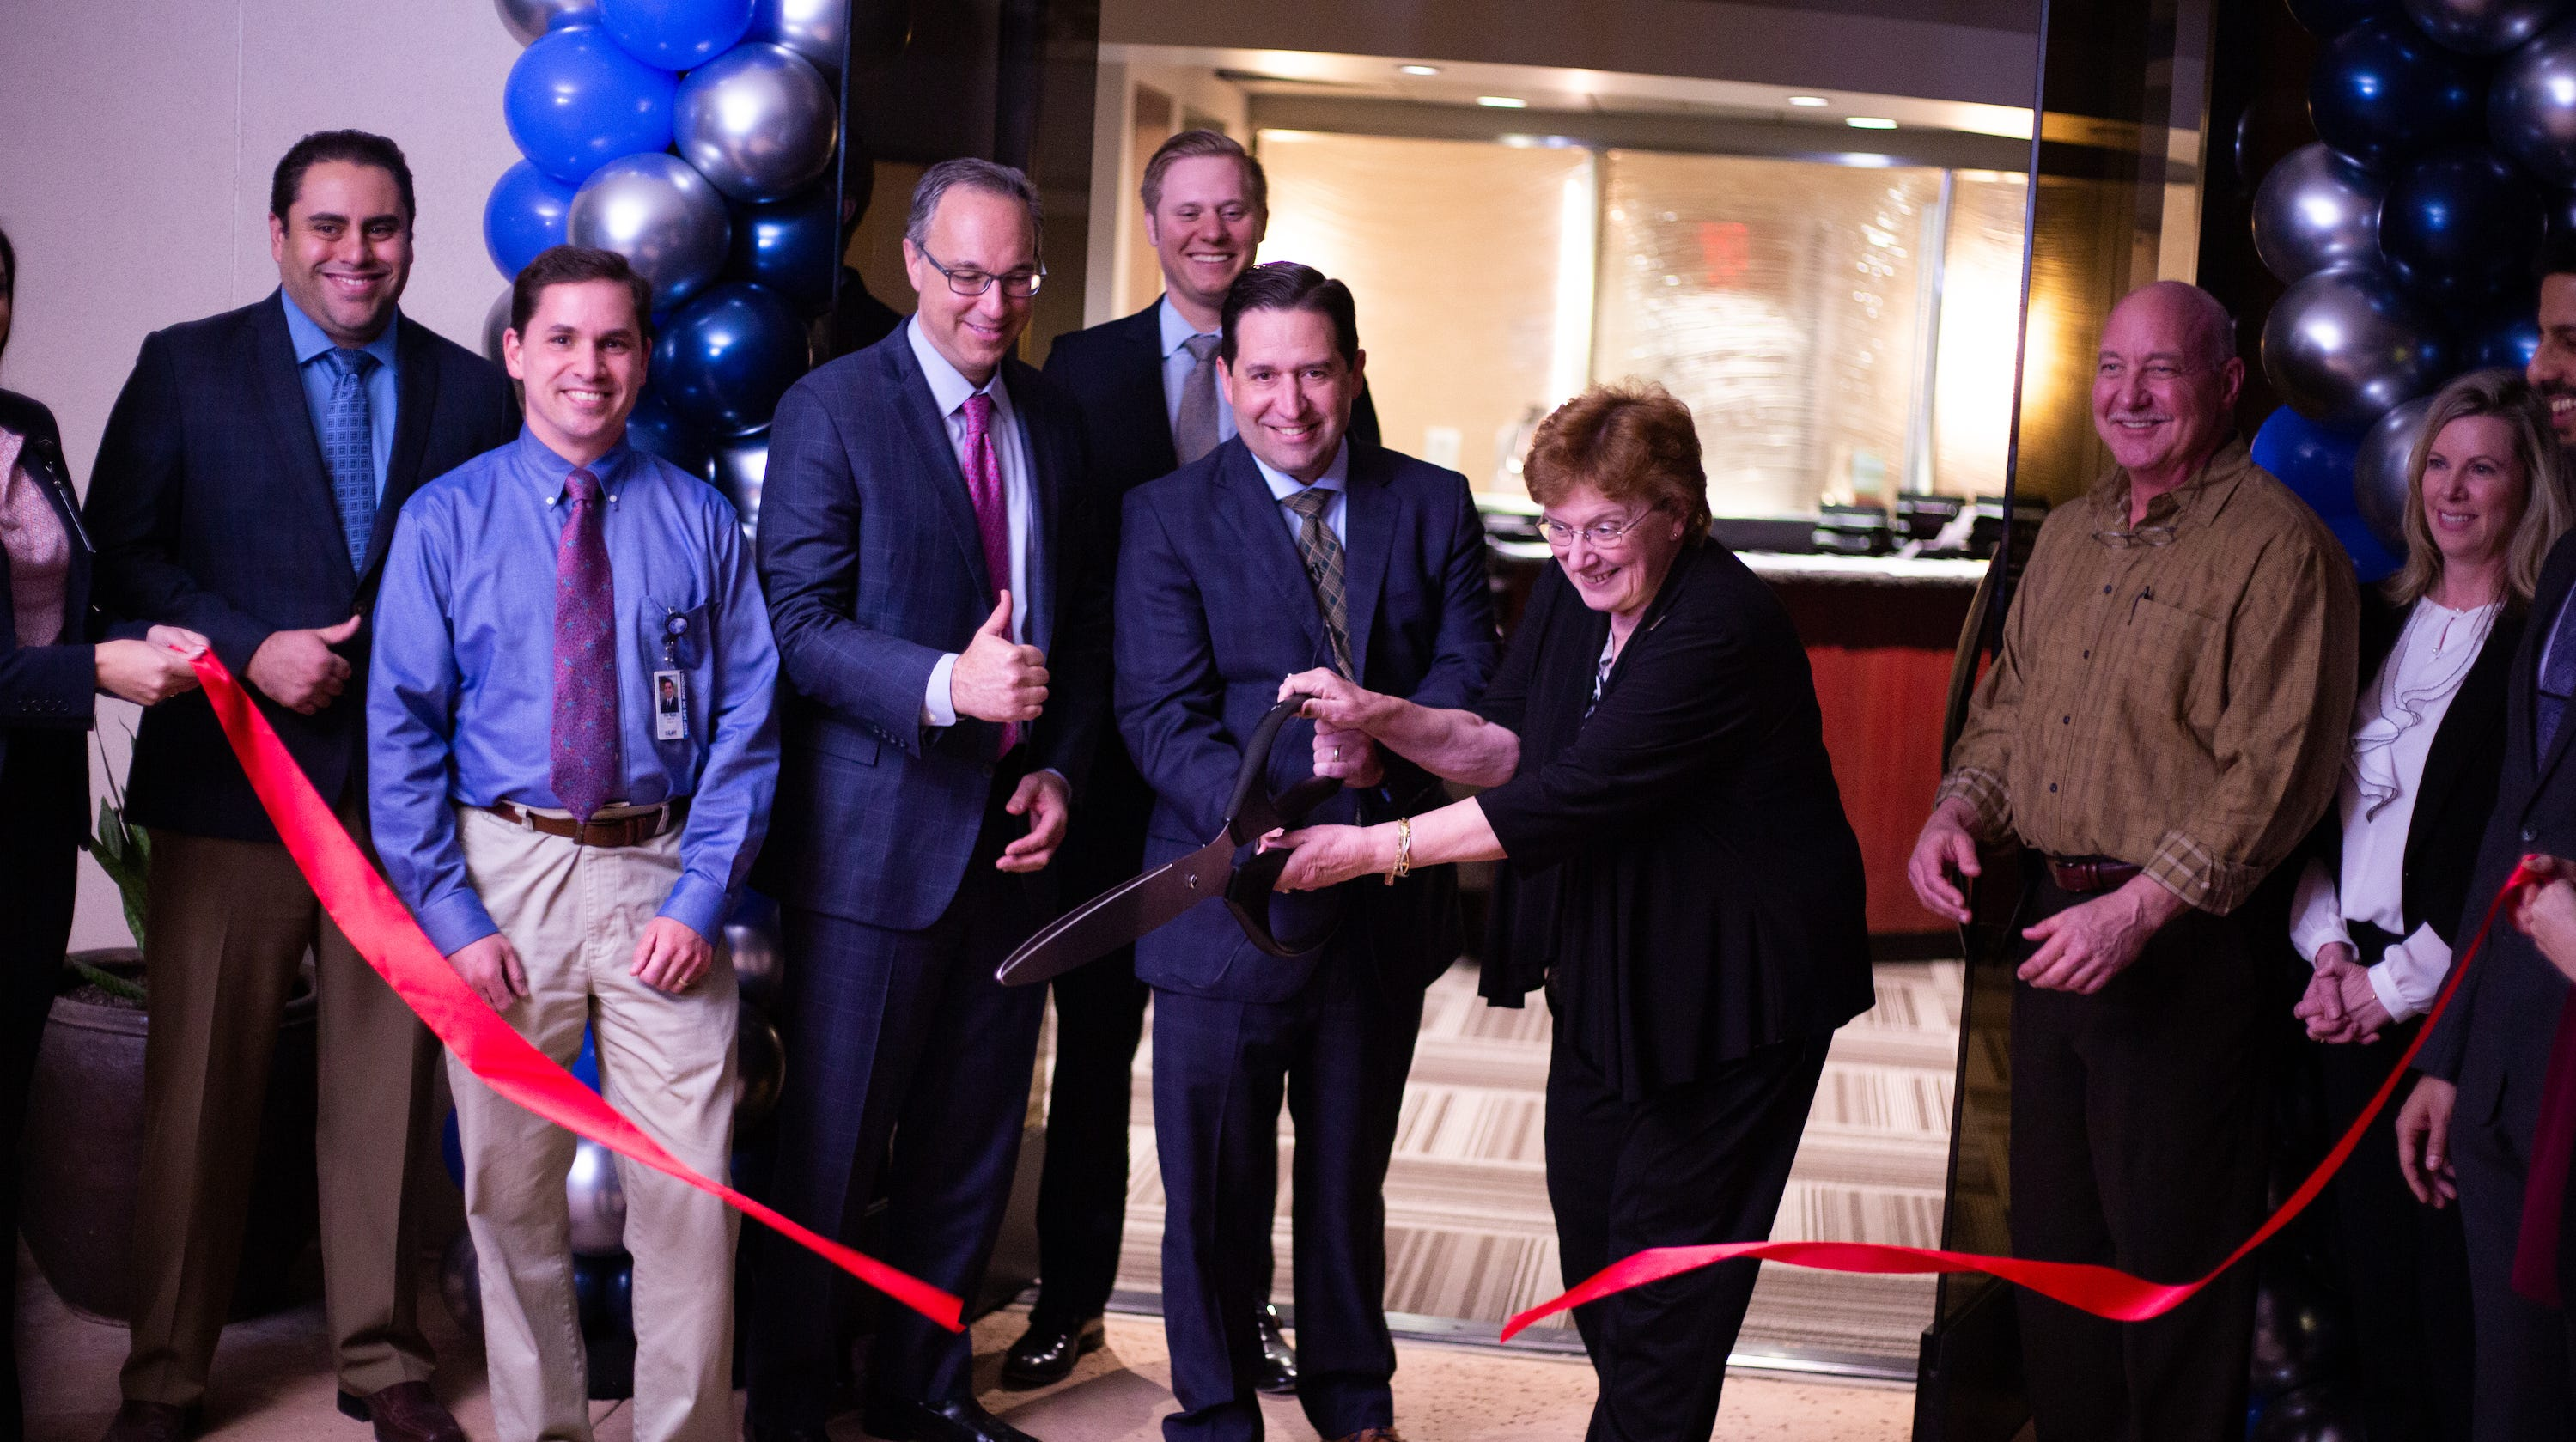 To meet the growing patient demand for highly skilled orthopedic services in the Northeast Valley, The CORE Institute has opened its 10th Arizona clinic at 90th Street and Shea Boulevard.